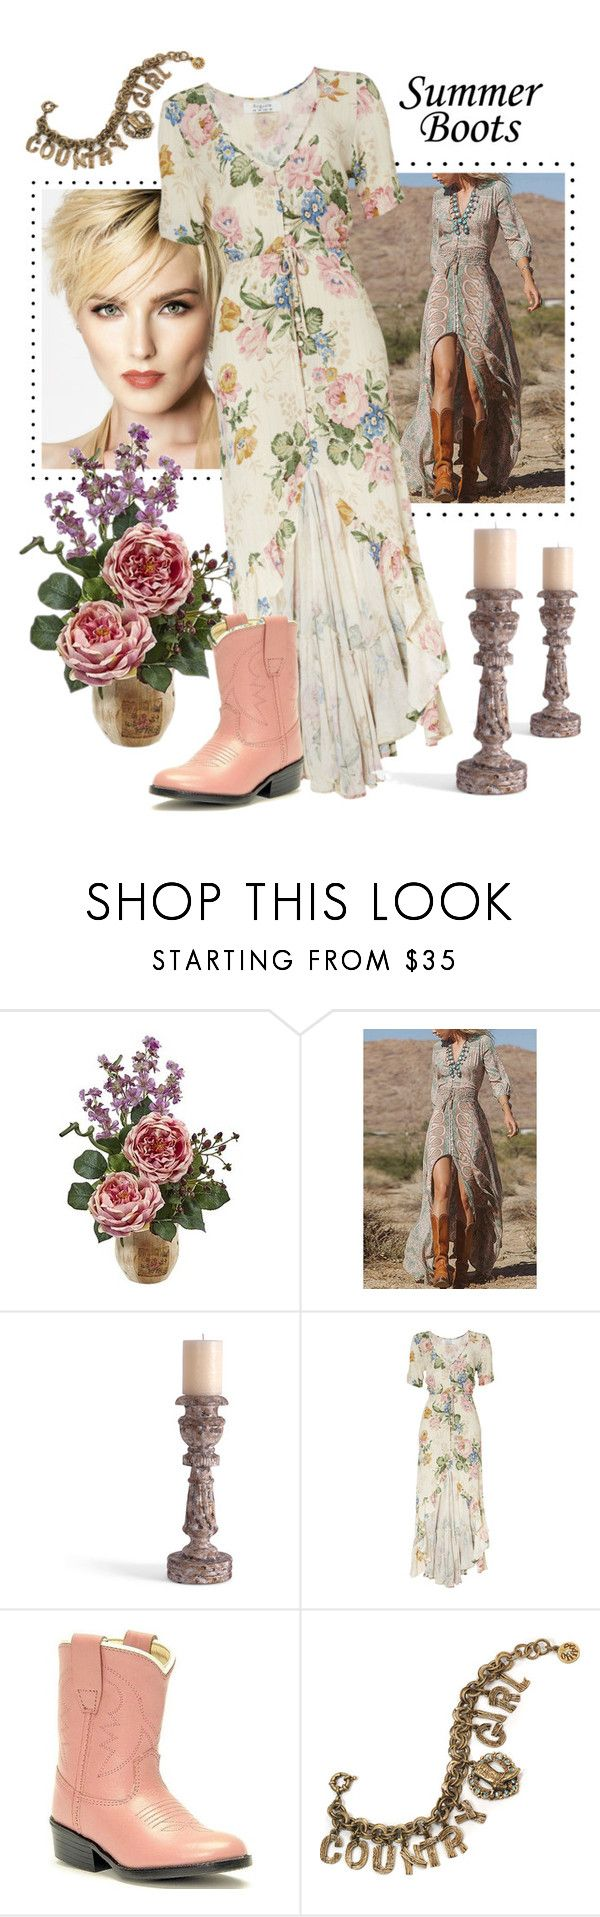 """Country Girl"" by andrea-kaye-nowak ❤ liked on Polyvore featuring Nearly Natural, Bliss Studio, Old West, Sweet Romance and country"